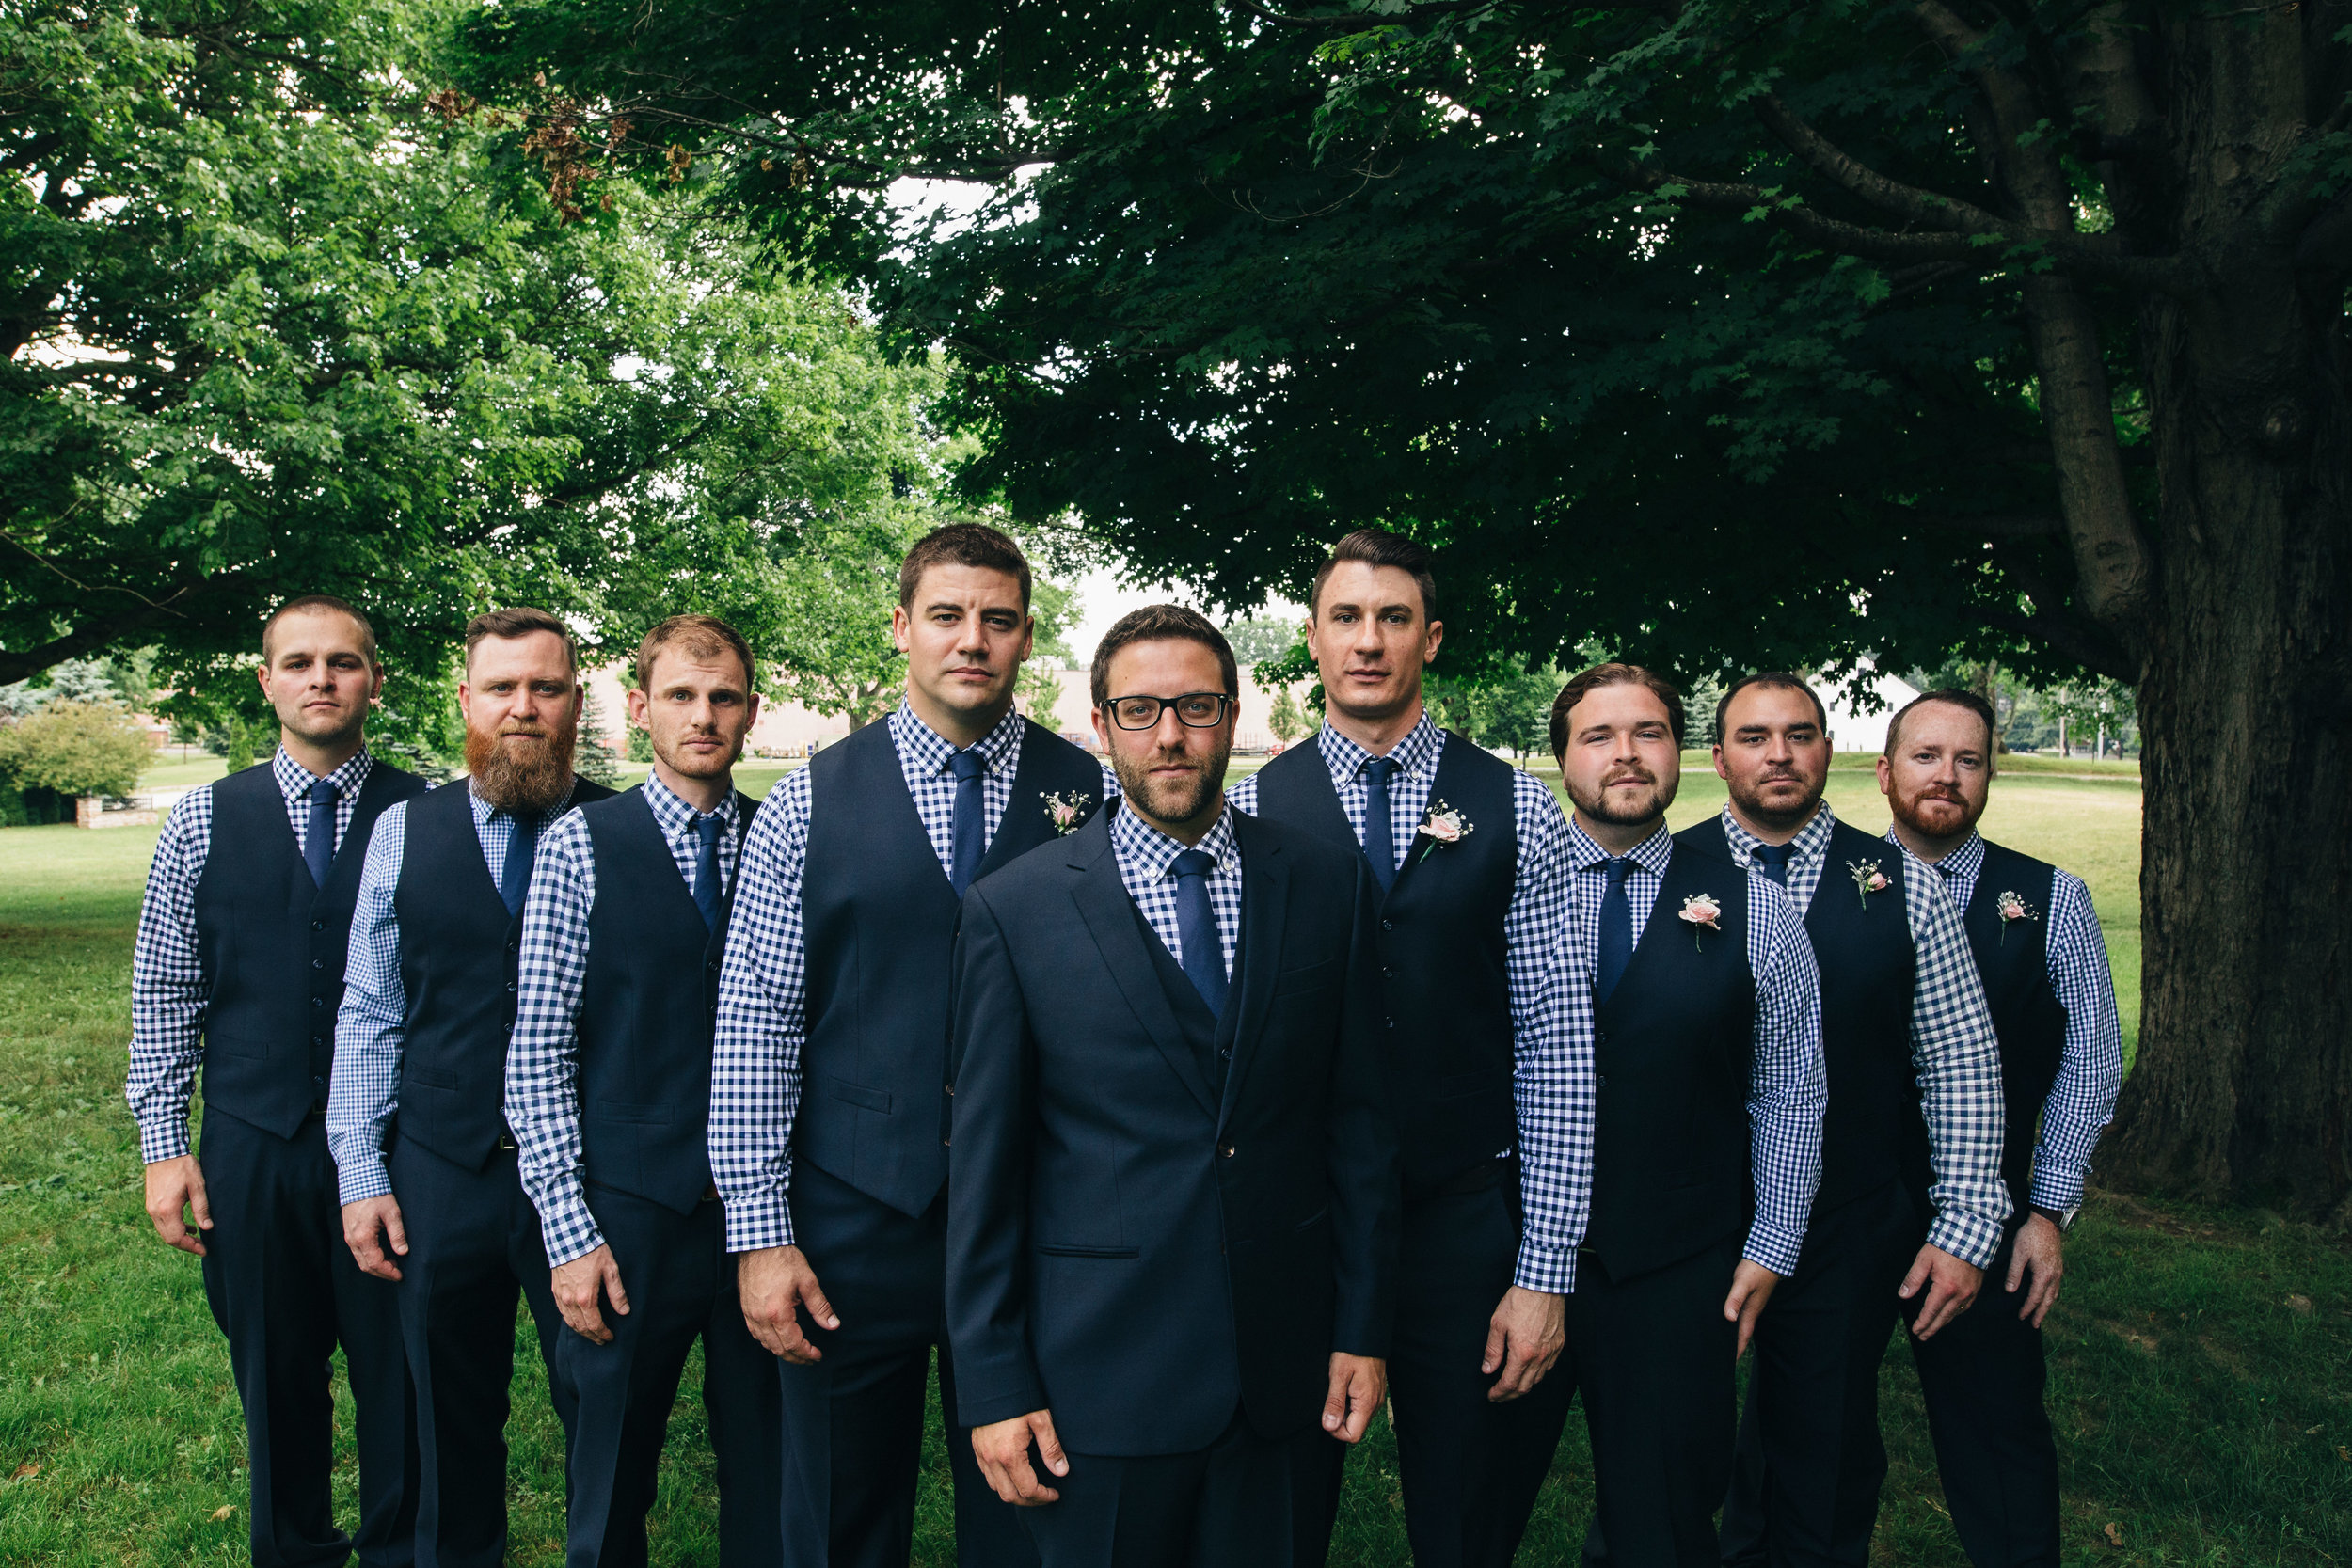 Stylish groomsmen in navy blue and checkered dress shirts in Canton, Ohio.